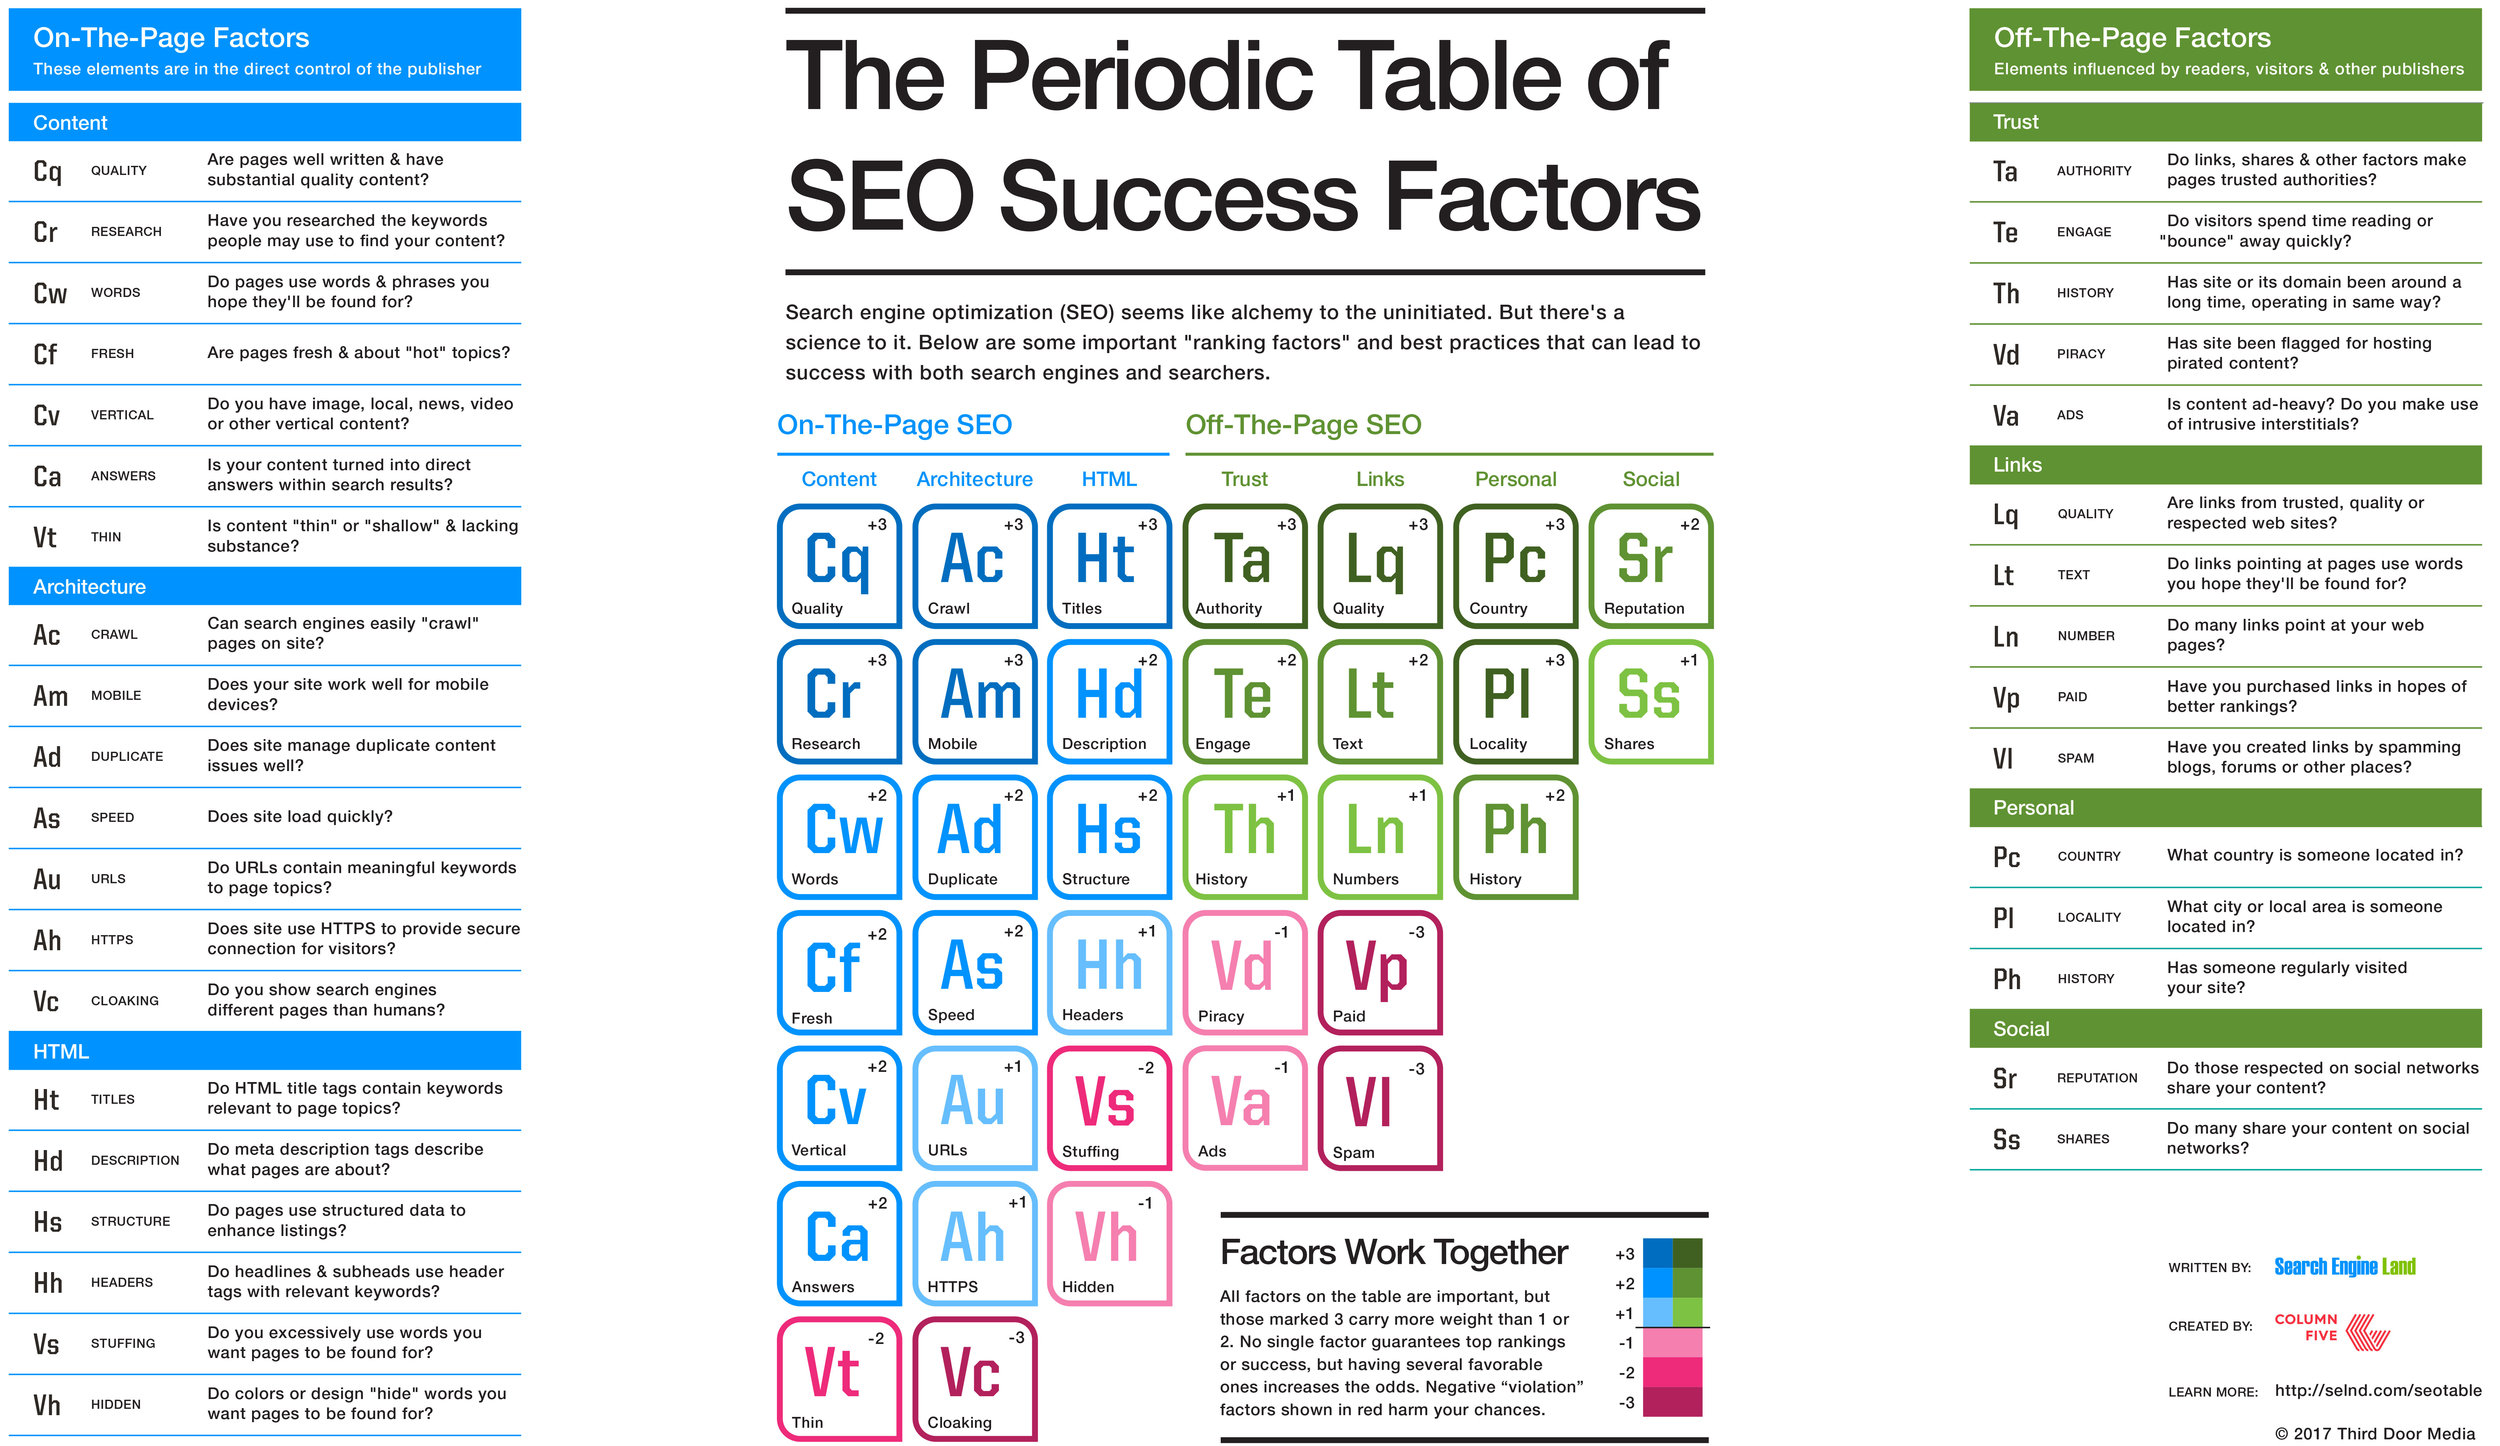 Source: The Periodic Table Of SEO Success Factors